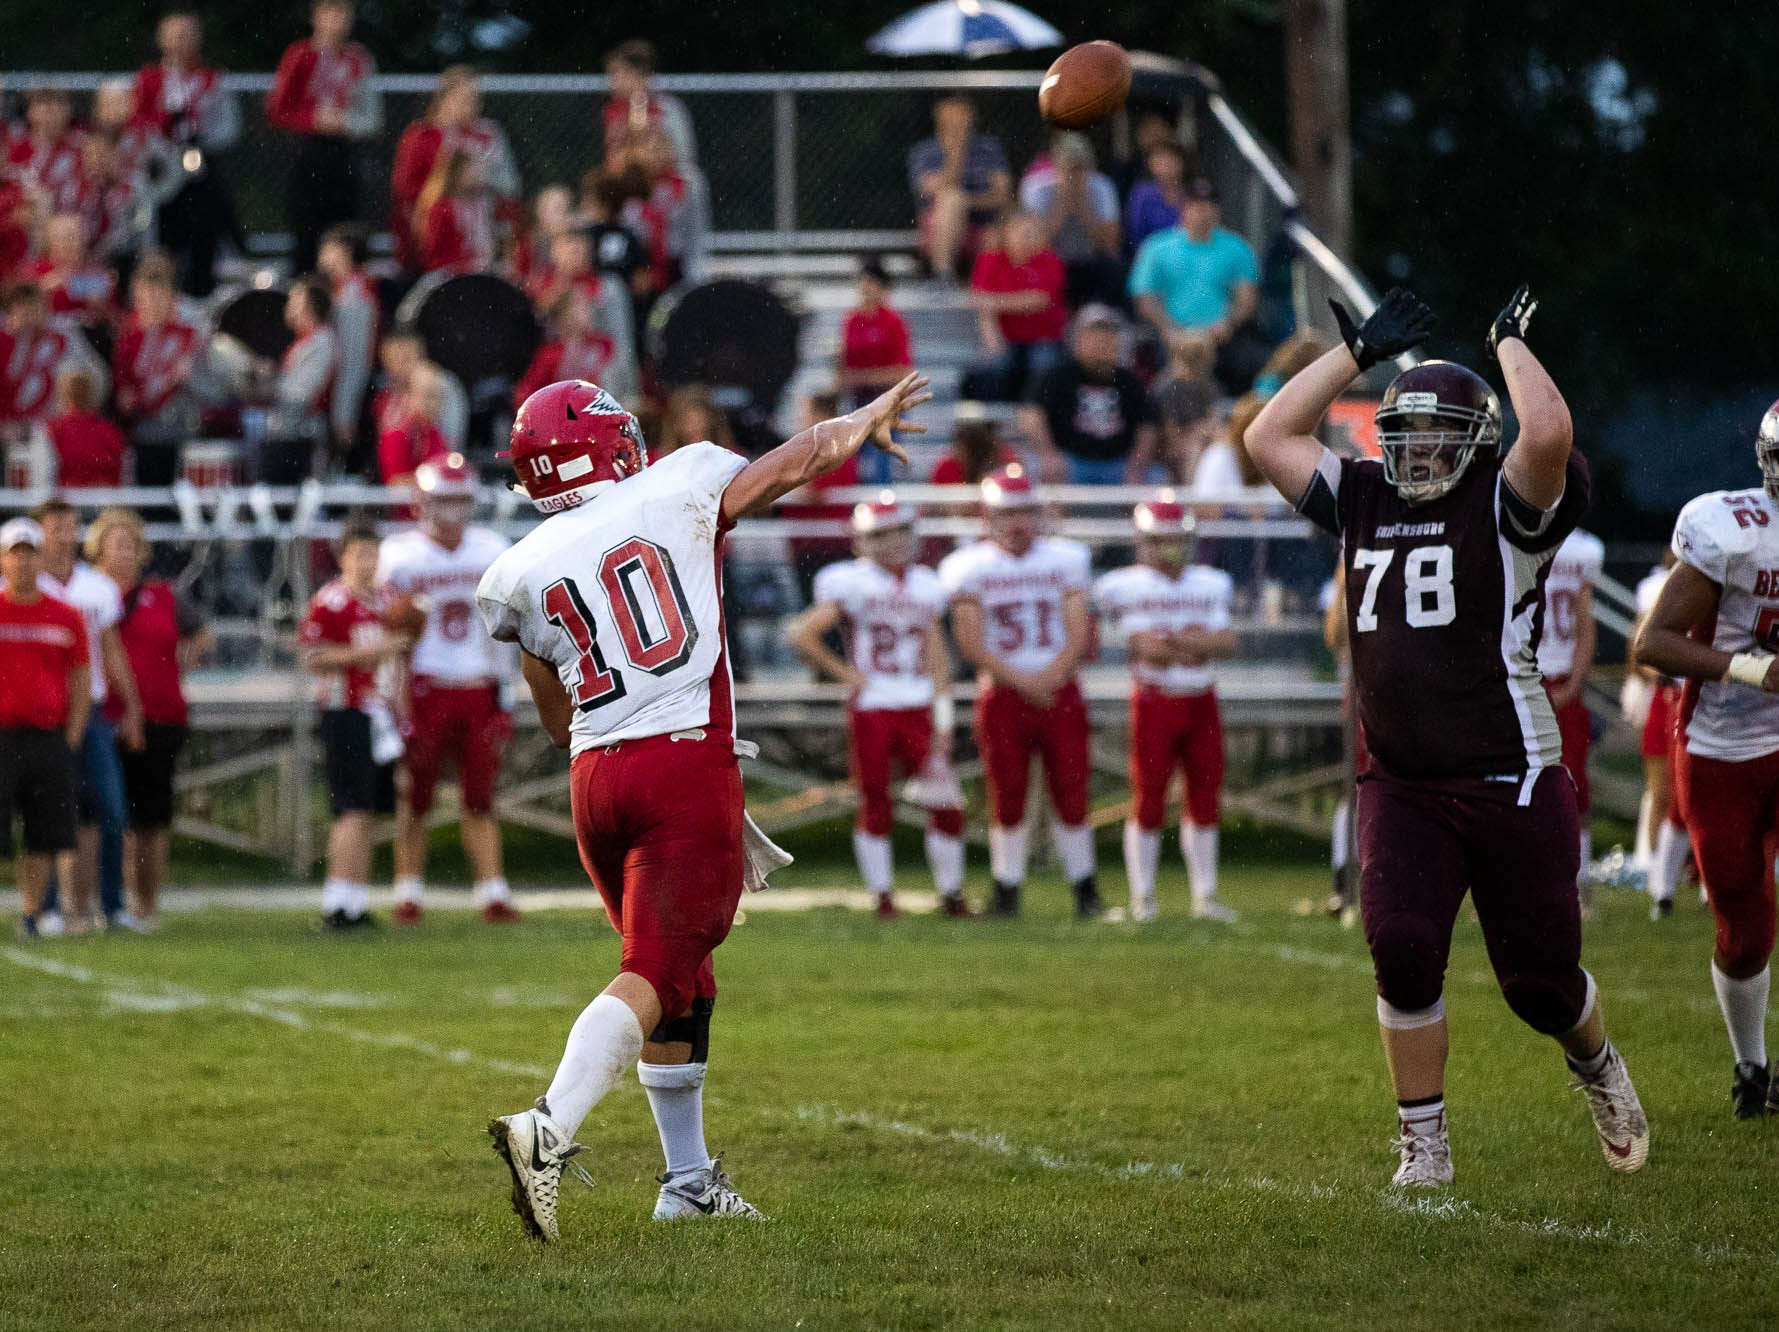 Bermudian Springs' Chase Dull (10) passes over the head of Shippensburg's Kyler Danzberger (78) during a football game between Shippensburg and Bermudian Springs, Friday, Sept. 7, 2018, at Shippensburg High School.